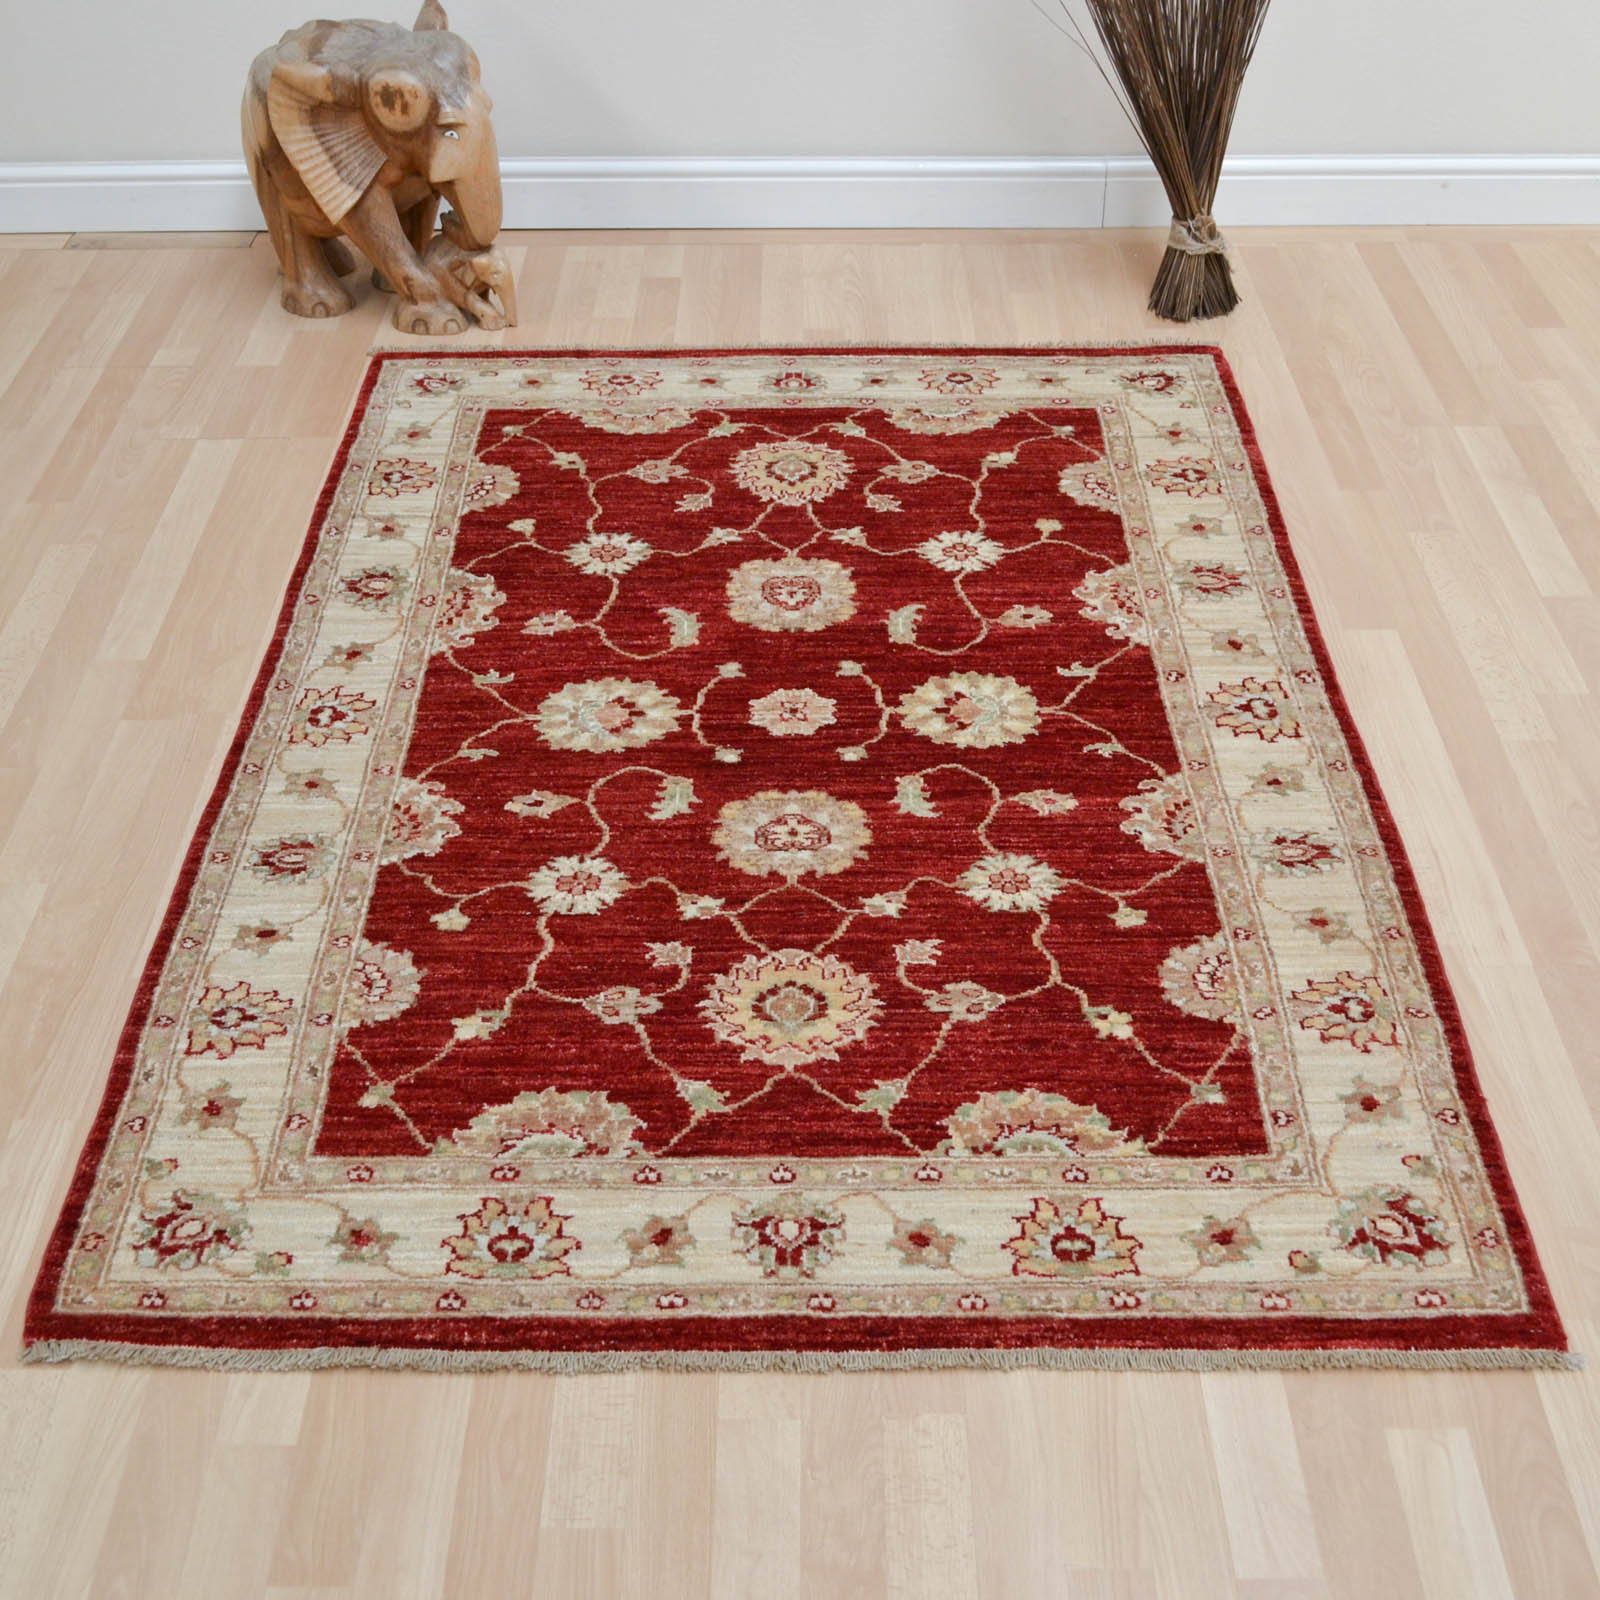 Hand Knotted Ziegler Wool Rugs in Red Cream